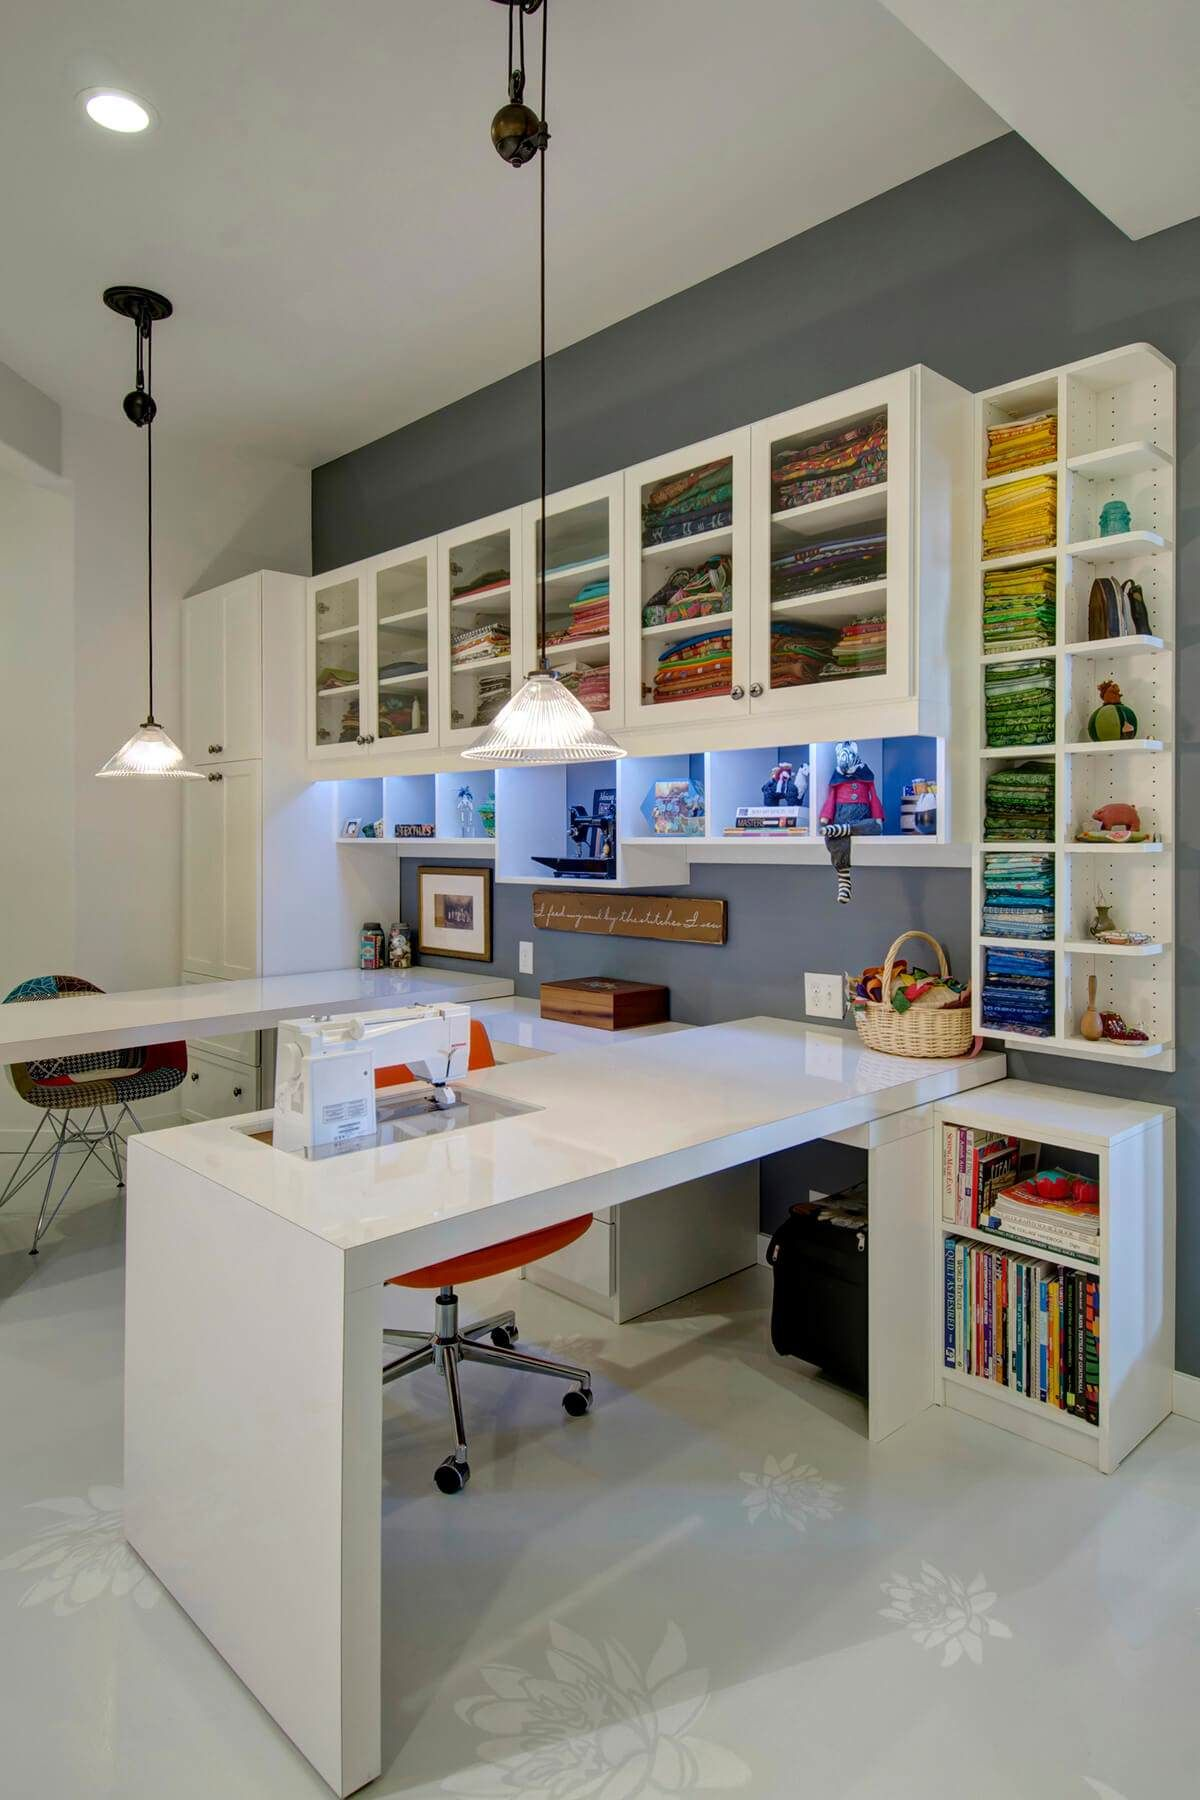 23 Craft Room Design Ideas (Creative Rooms) | Tall ceilings, Sewing ...